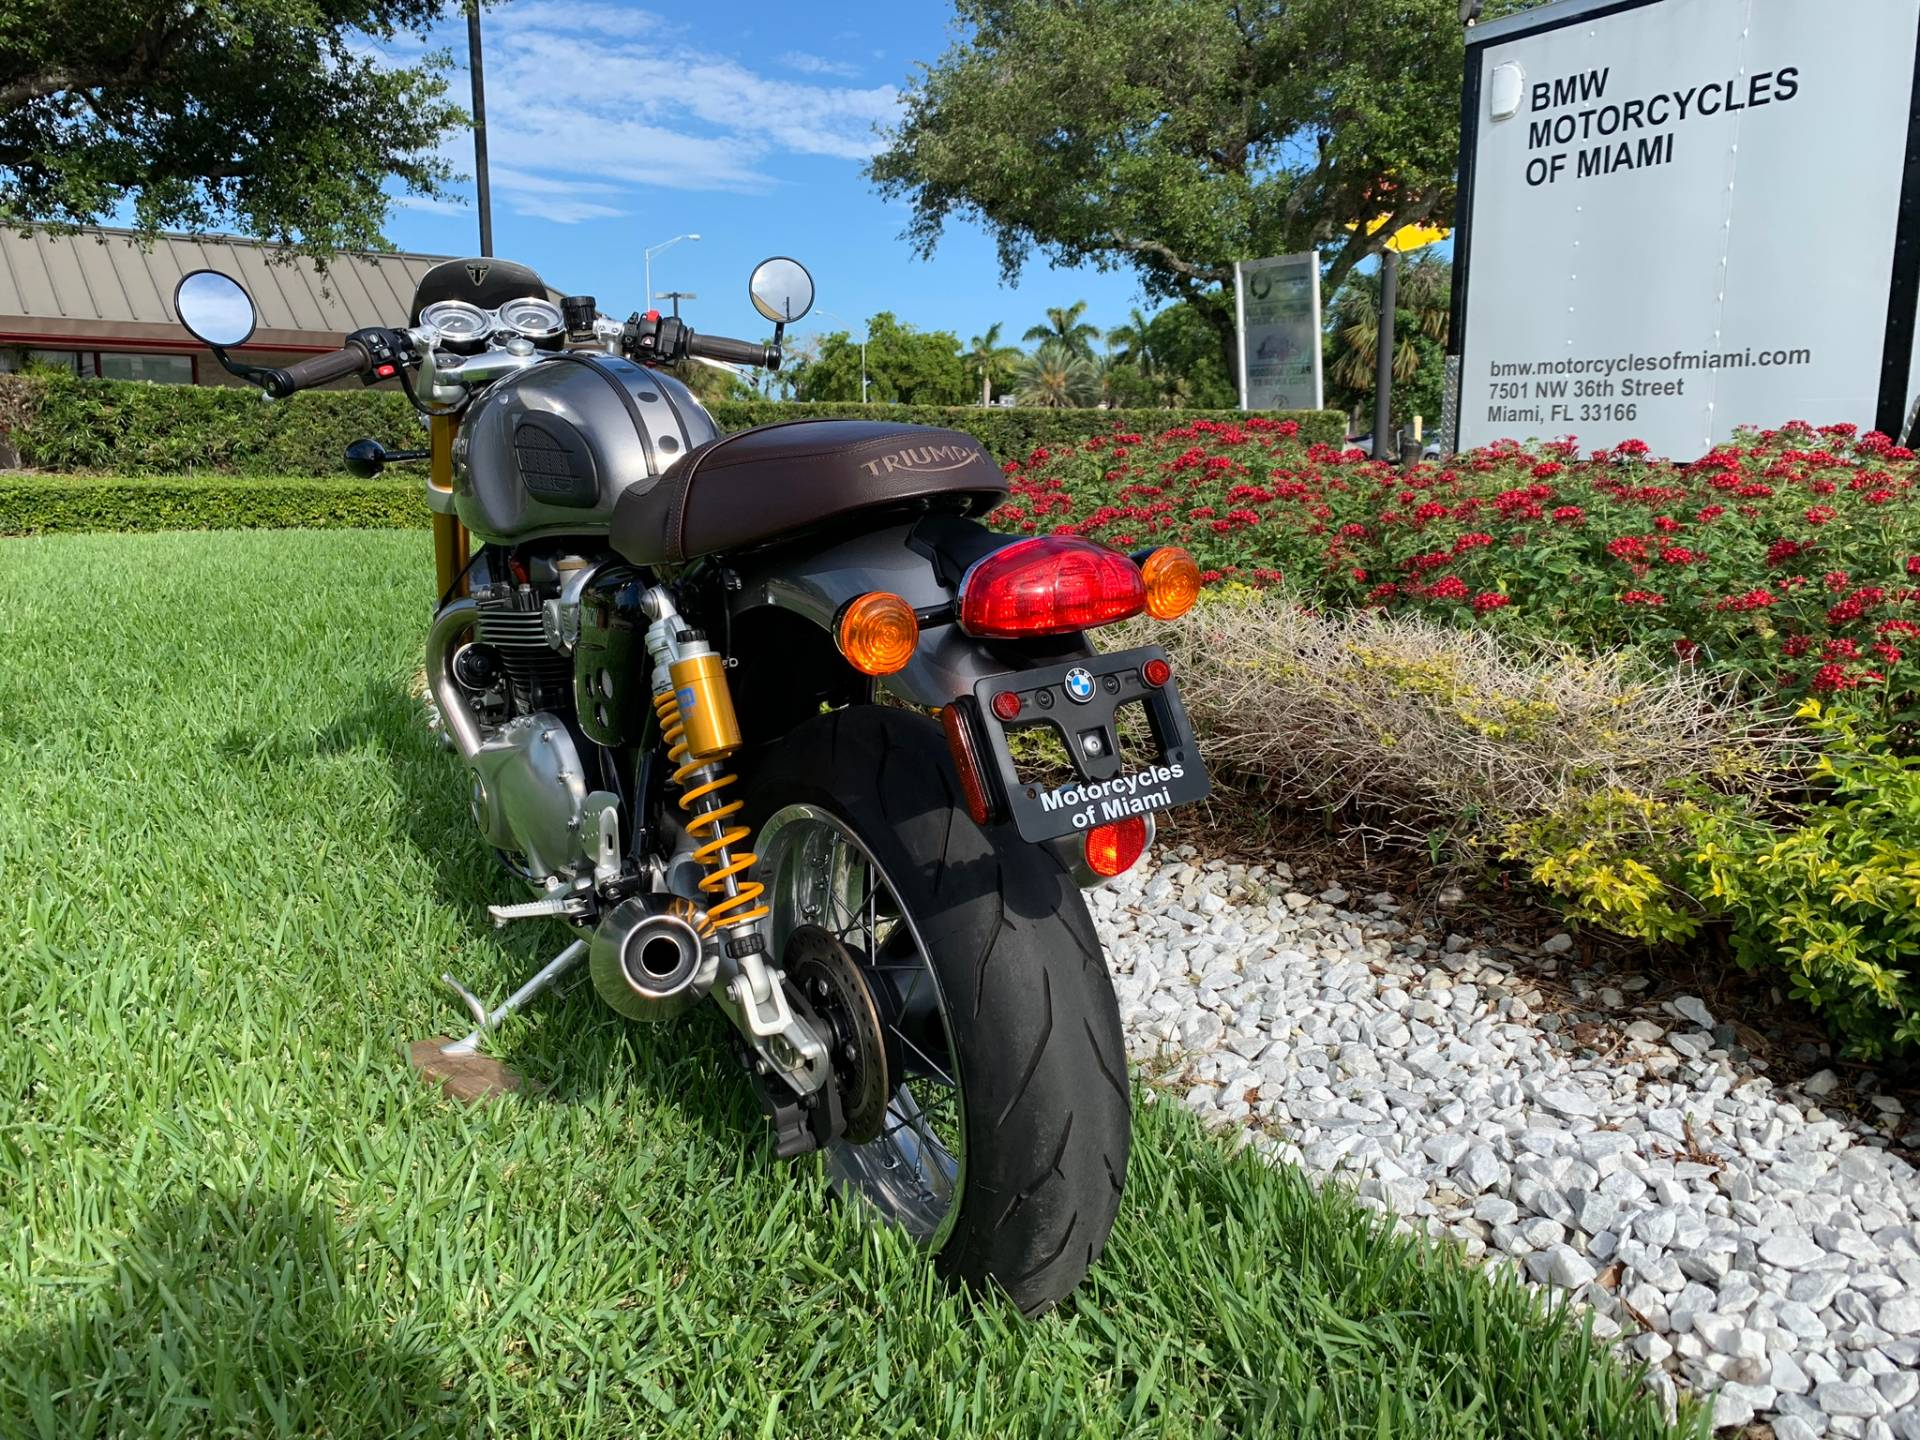 Used 2016 Triumph Thruxton 1200 R for sale,  2016 Triumph Thruxton 1200R for sale,  Triumph Thruxton1200R,  Used ThruxtonR, Cafe. Cruiser, BMW Motorcycles of Miami, Motorcycles of Miami, Motorcycles Miami, New Motorcycles, Used Motorcycles, pre-owned. #BMWMotorcyclesOfMiami #MotorcyclesOfMiami #Moto - Photo 11